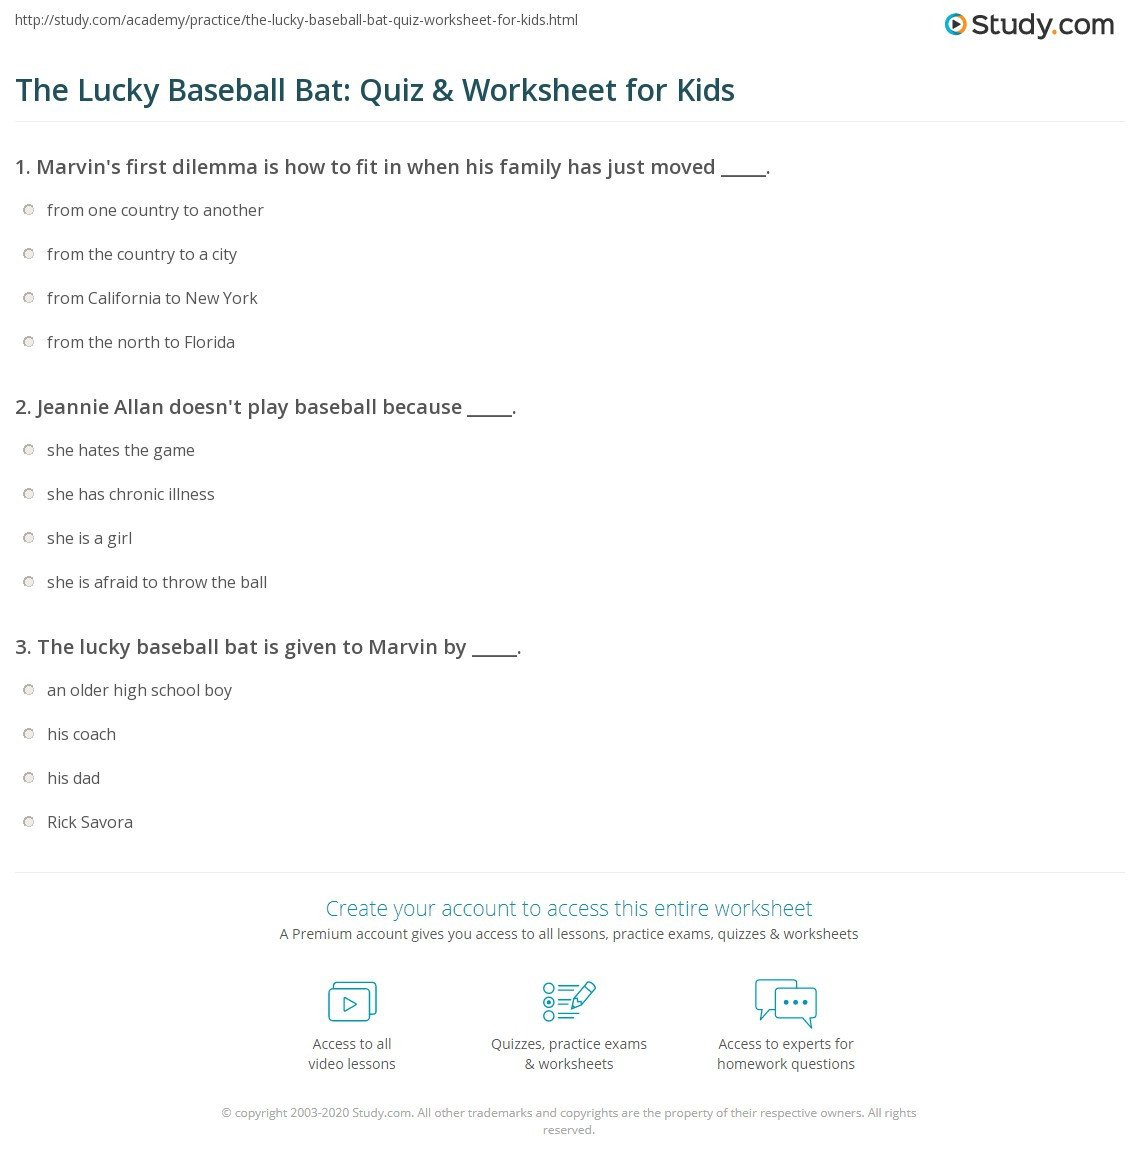 the lucky baseball bat quiz worksheet for kids